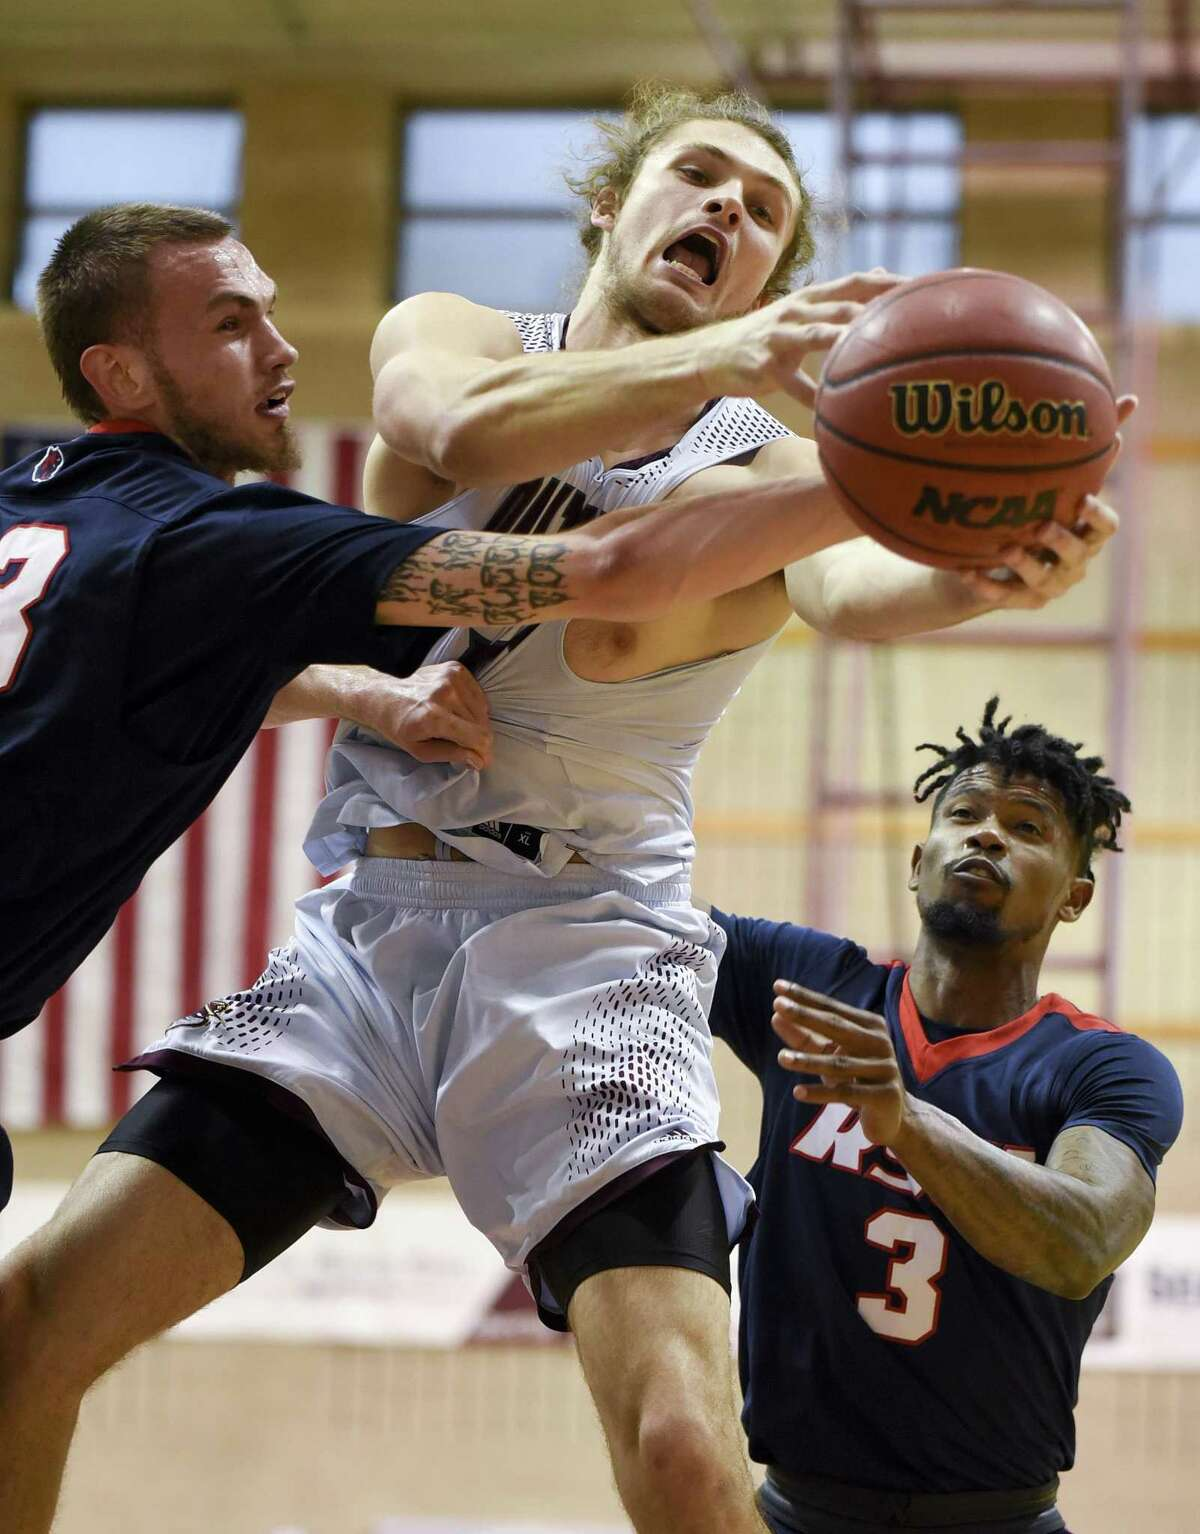 TAMIU center Damon Leach had five points and eight rebounds for the Dustdevils, leading the charge inside with center Steven Coulanges missing Saturday's game due to lingering symptoms from a previous concussion.